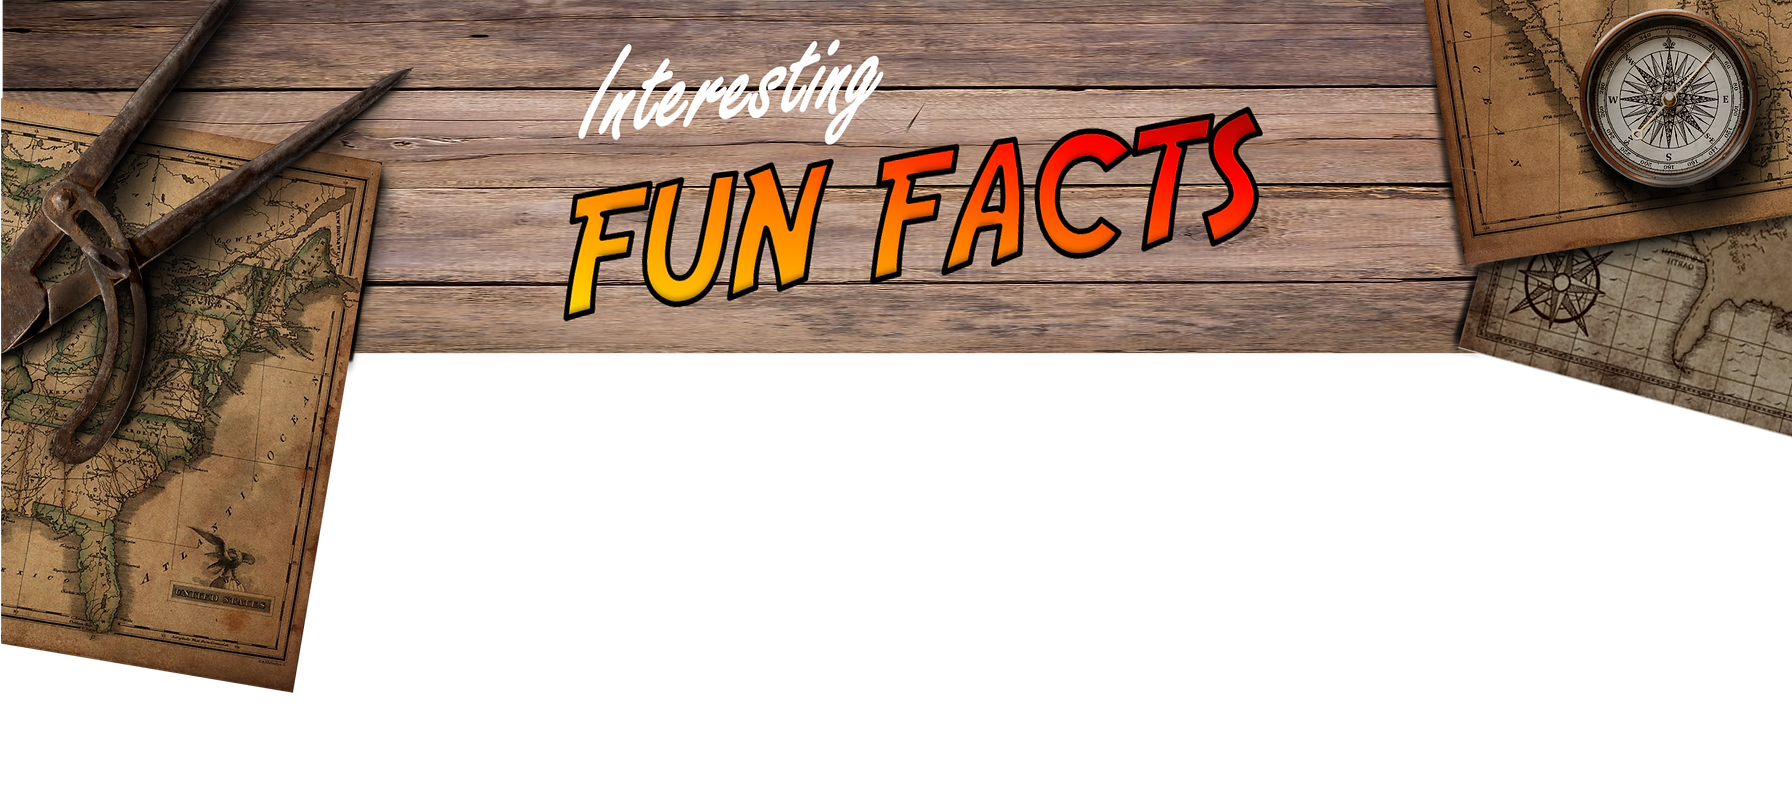 Fun Facts.png